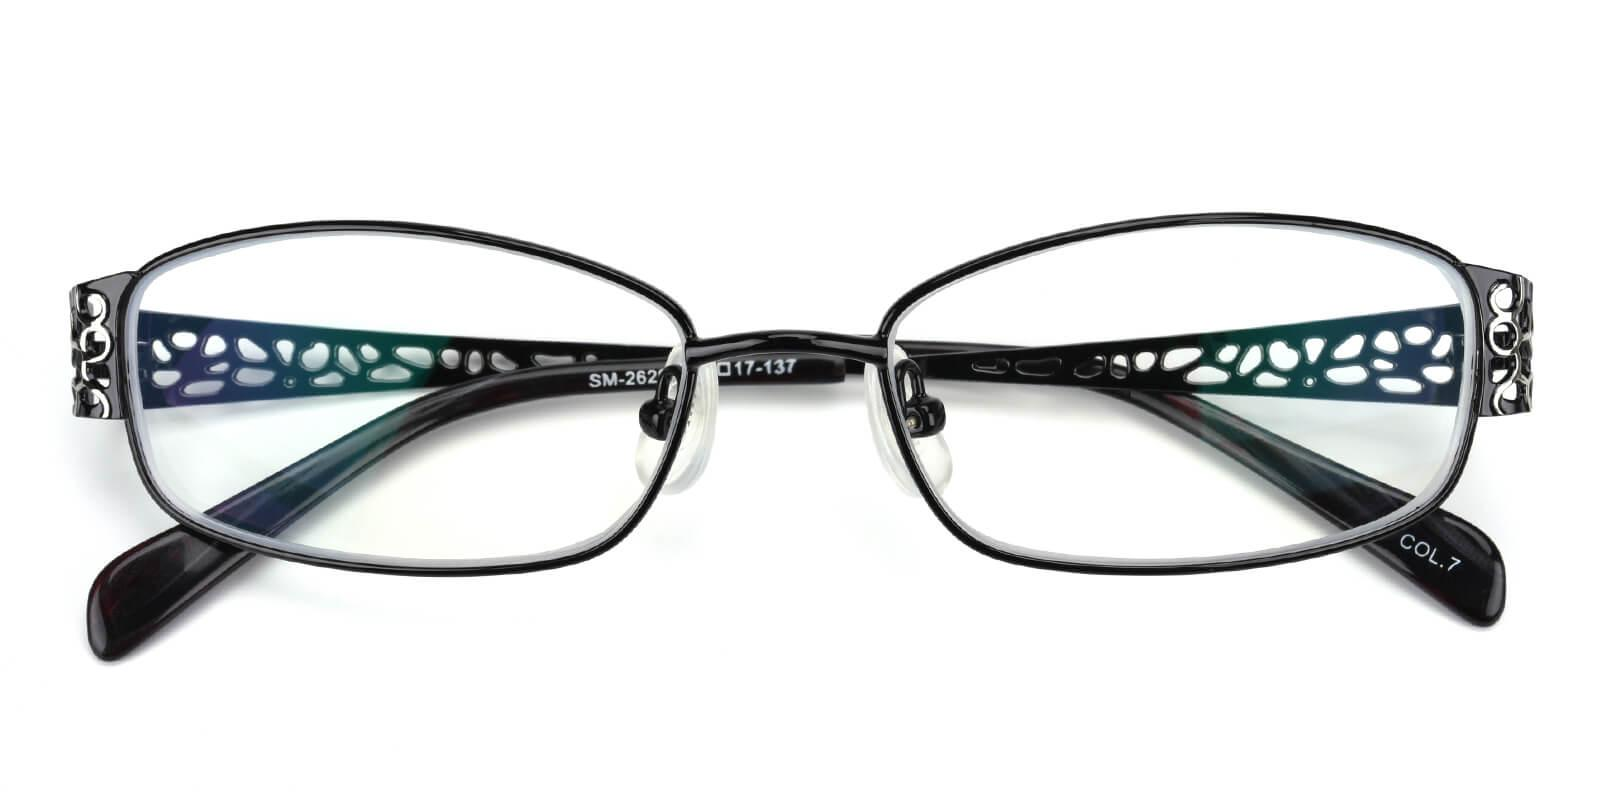 Hollowing-Black-Rectangle-Metal-Eyeglasses-detail